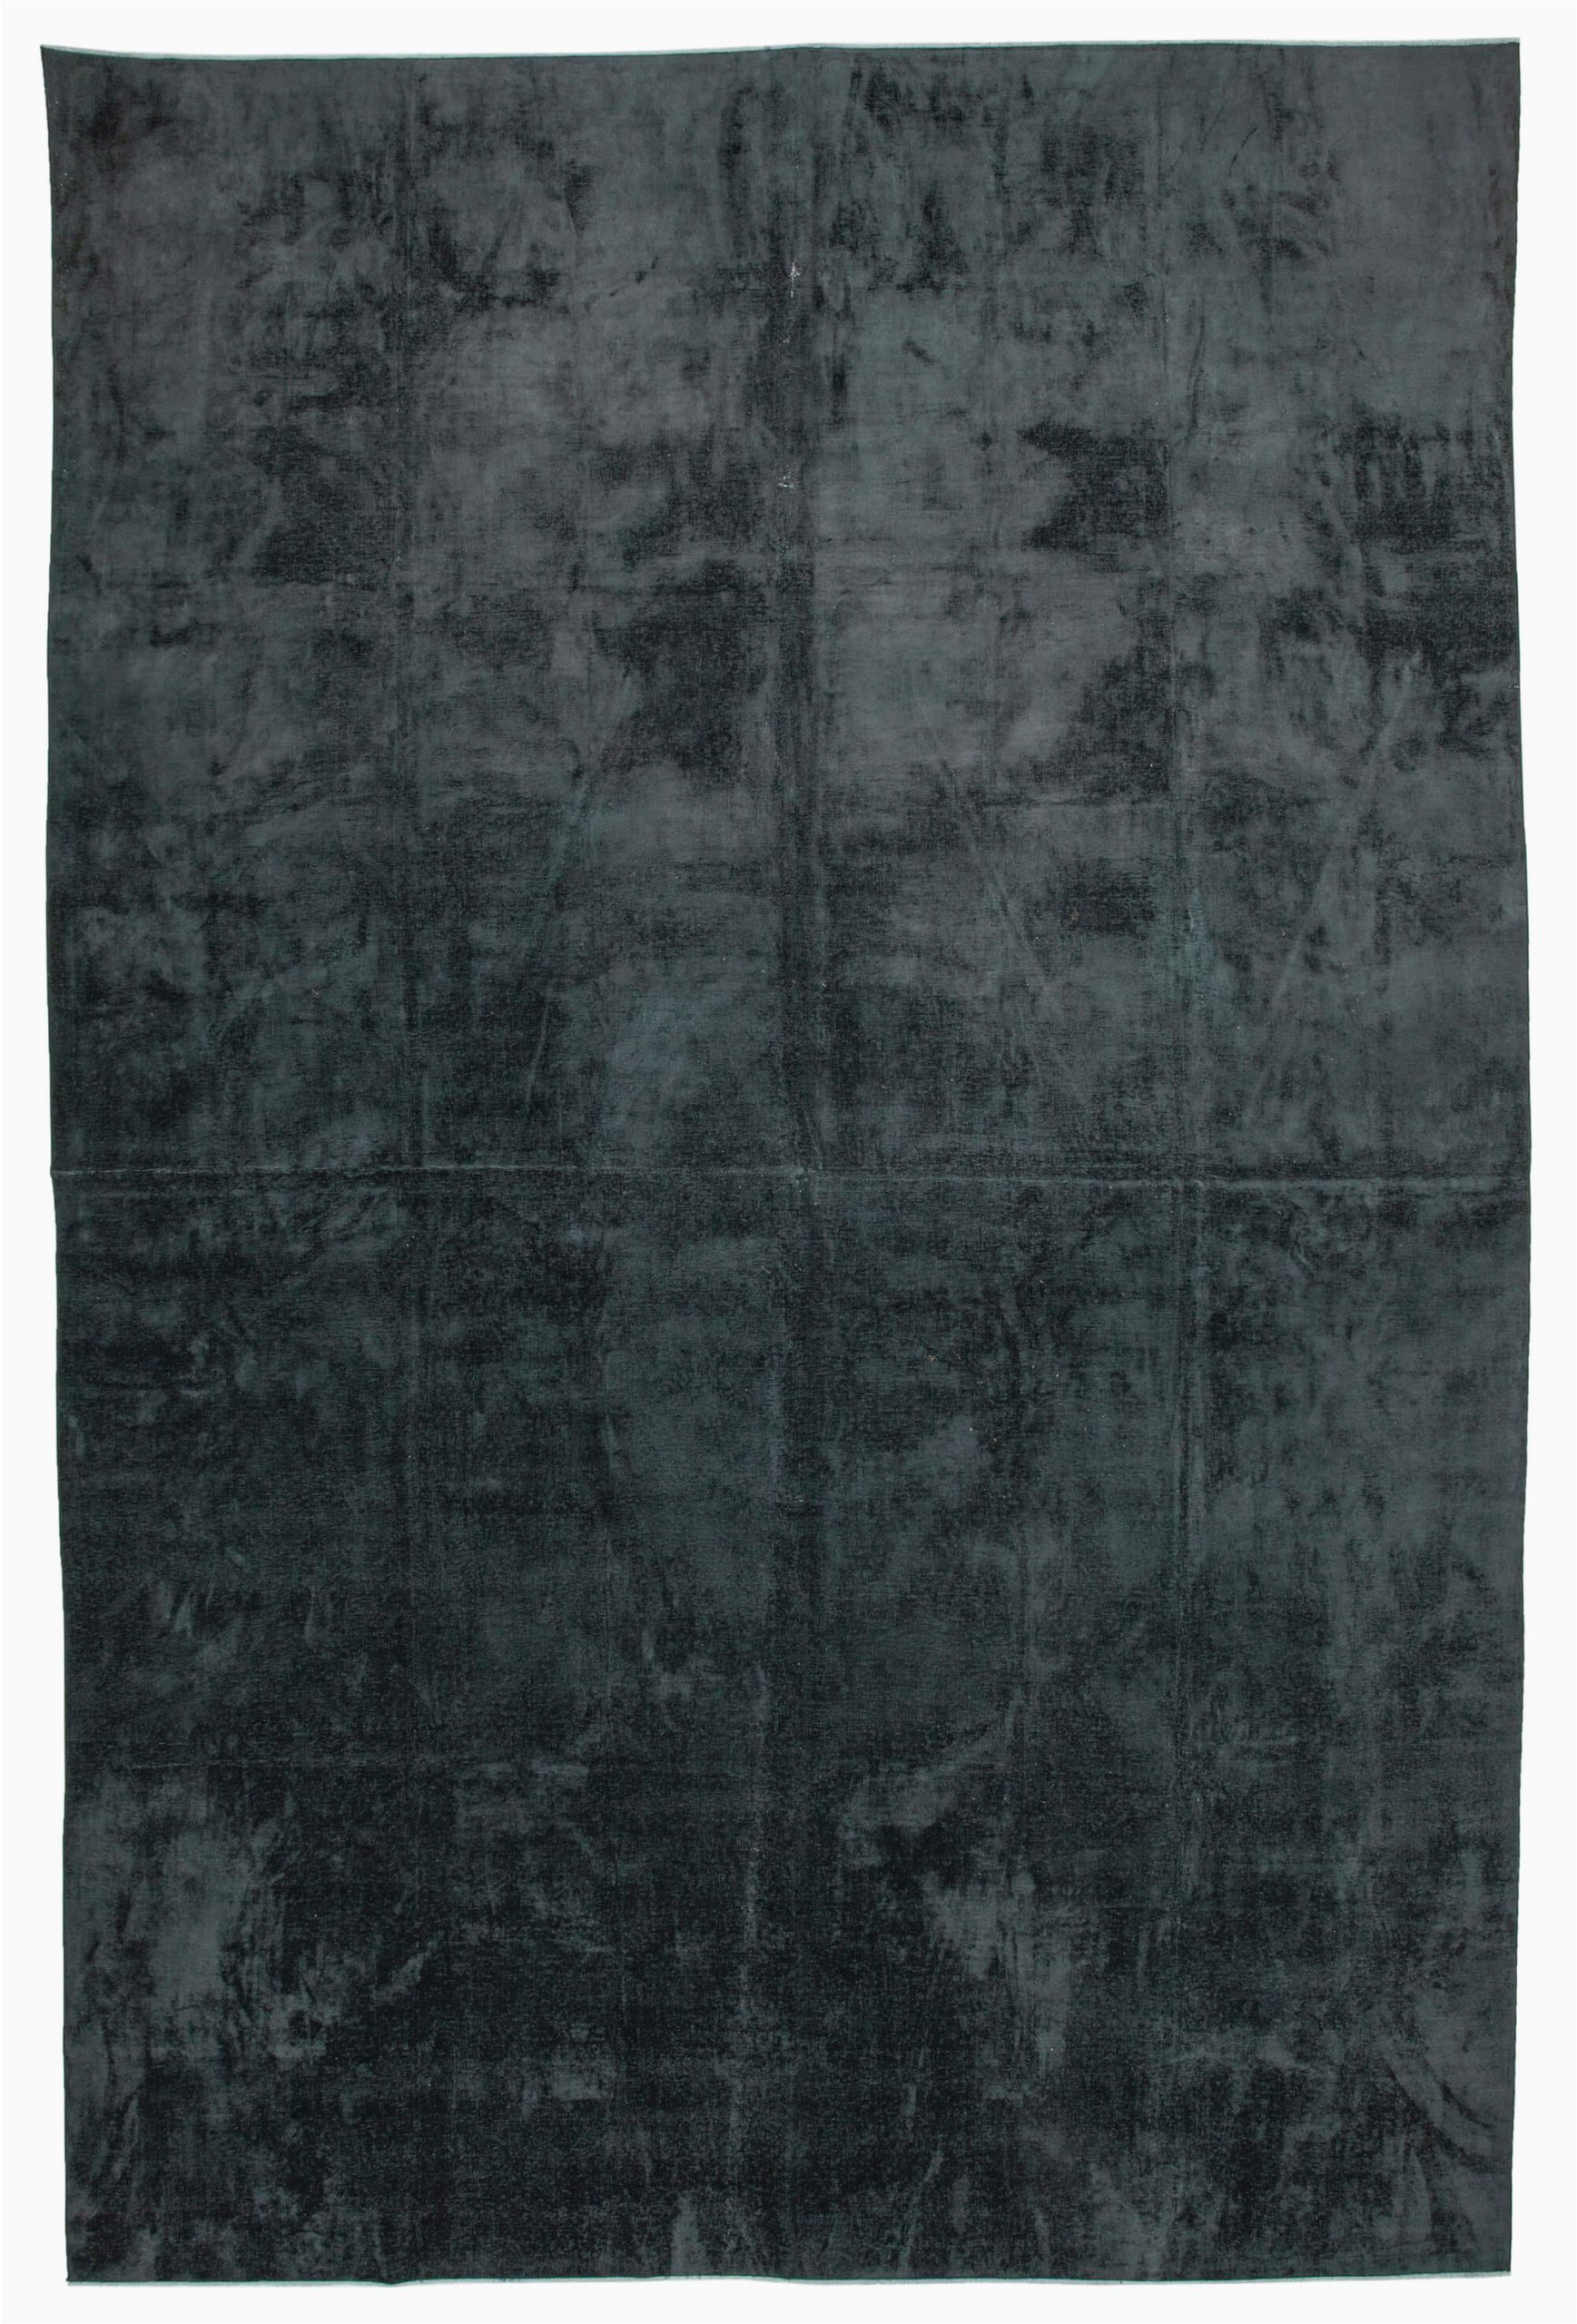 11x17 black overdyed large area rug 2416